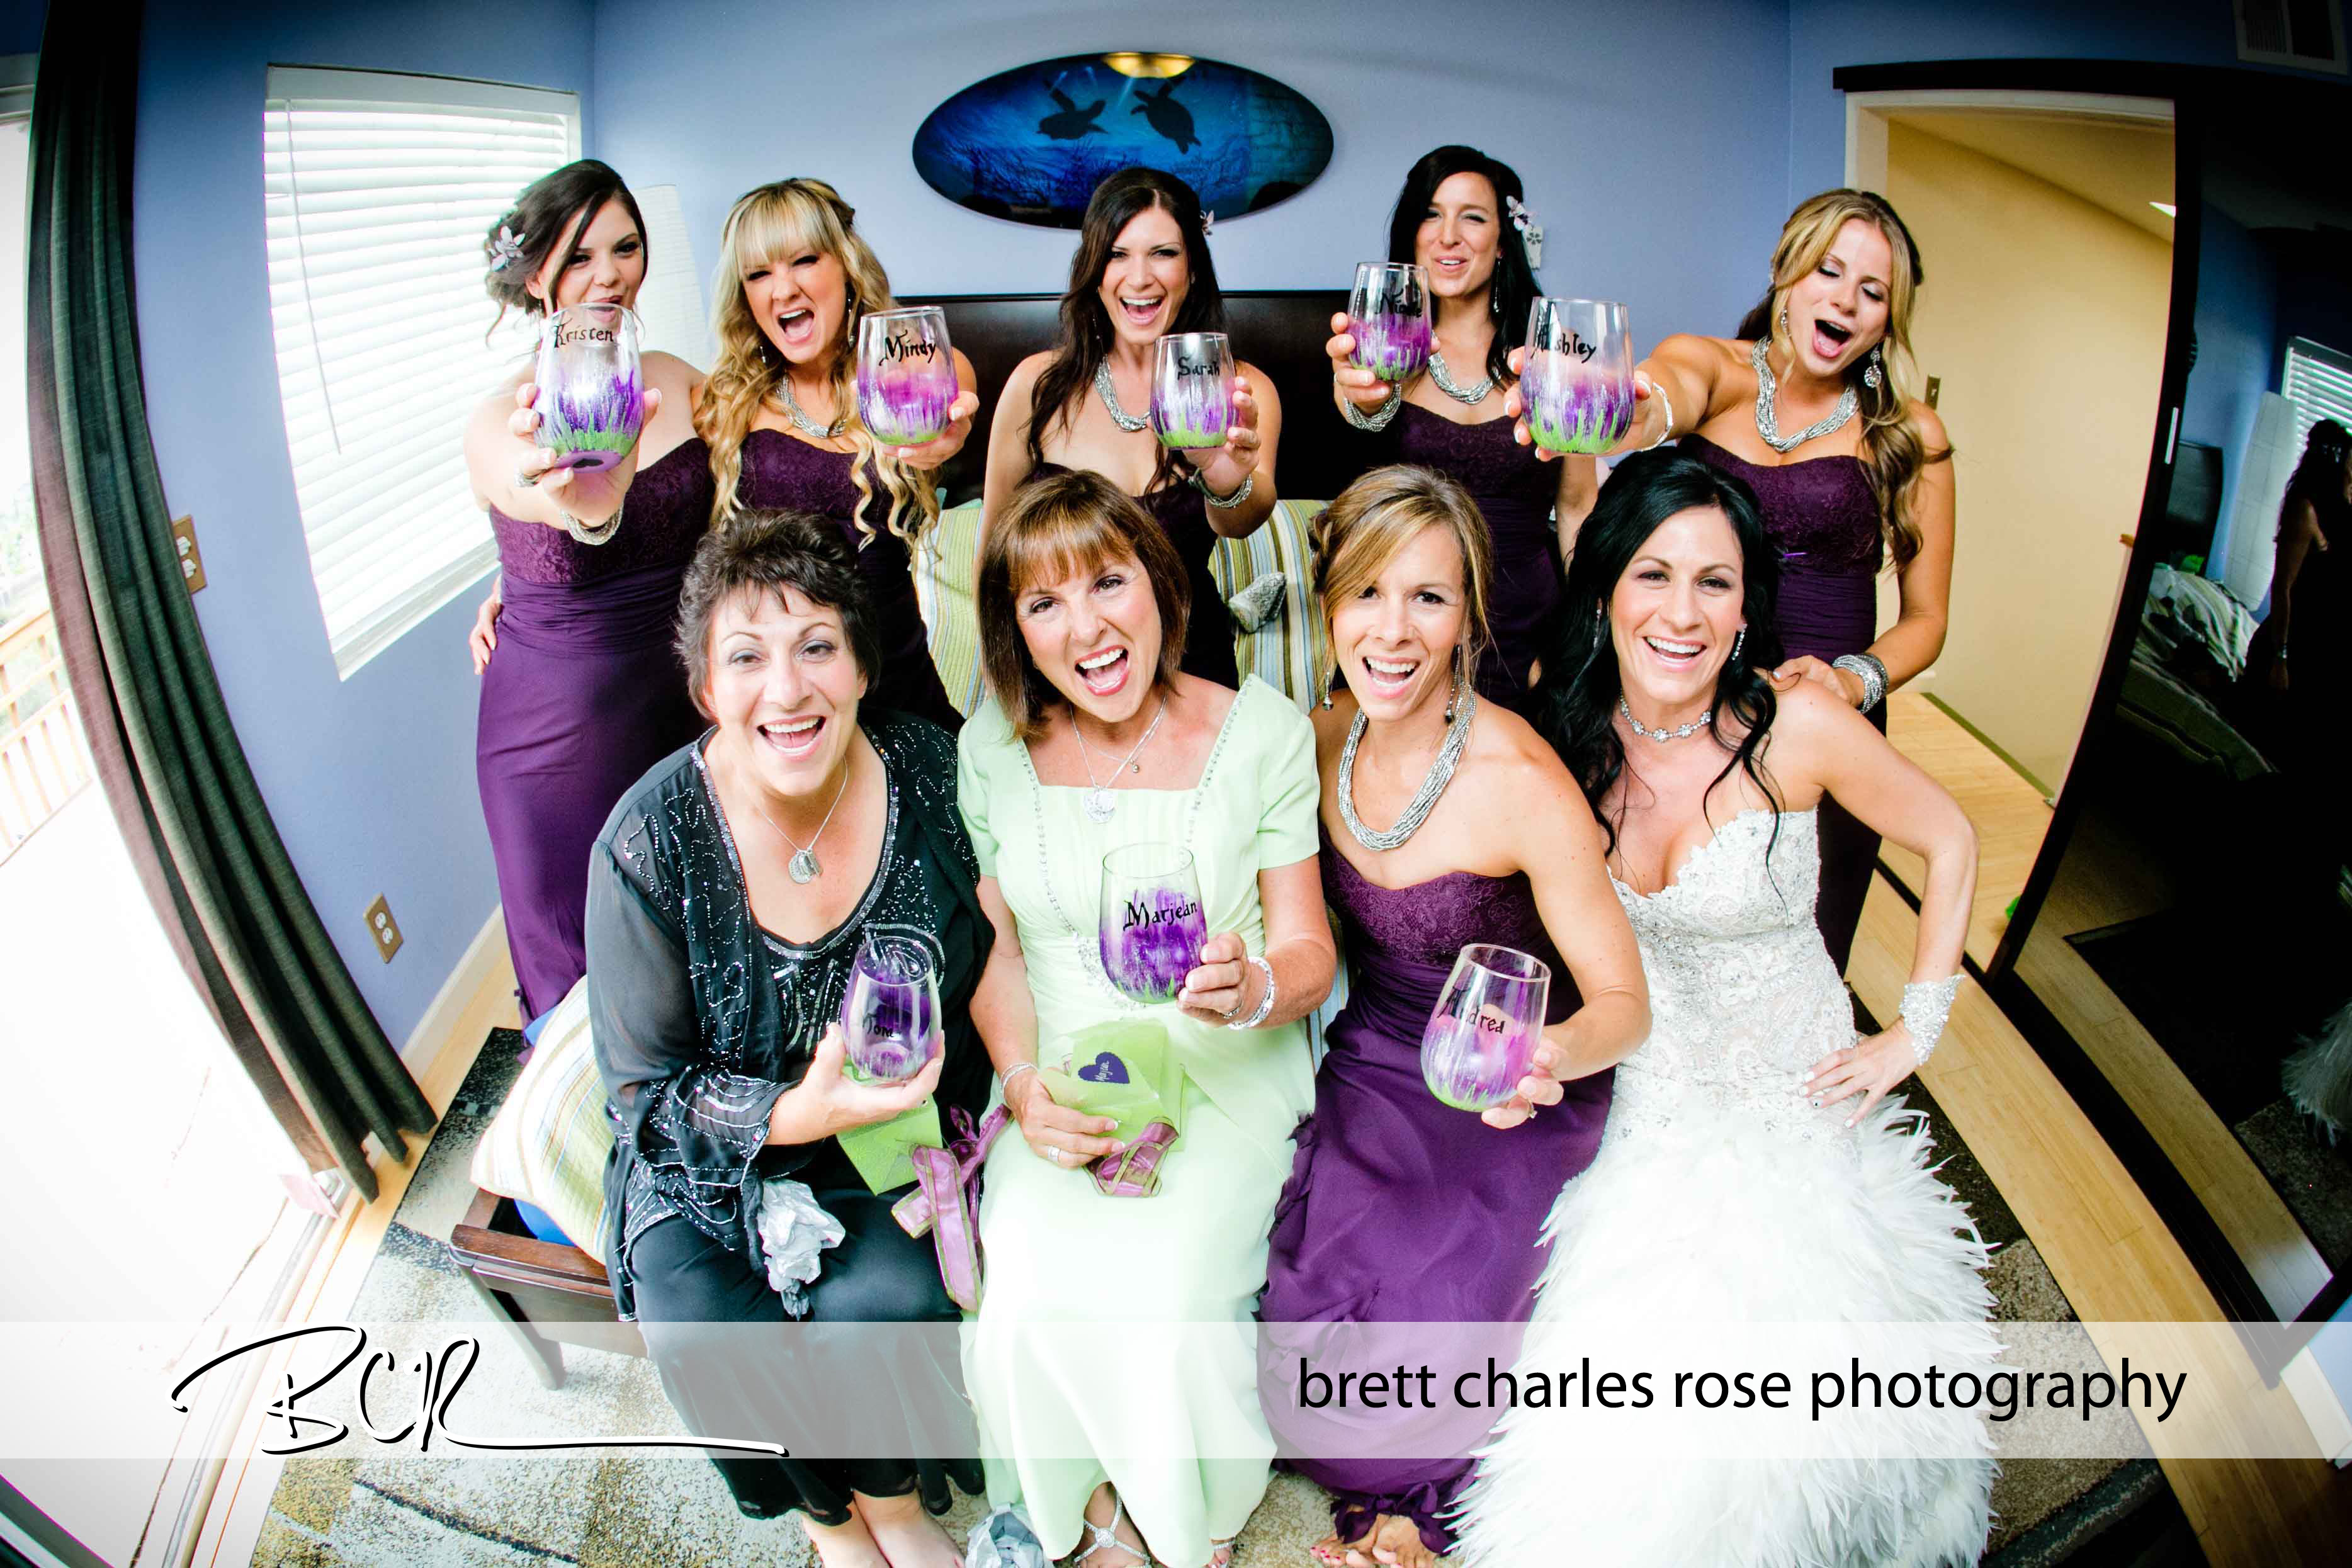 Bridesmaid photos, fun poses